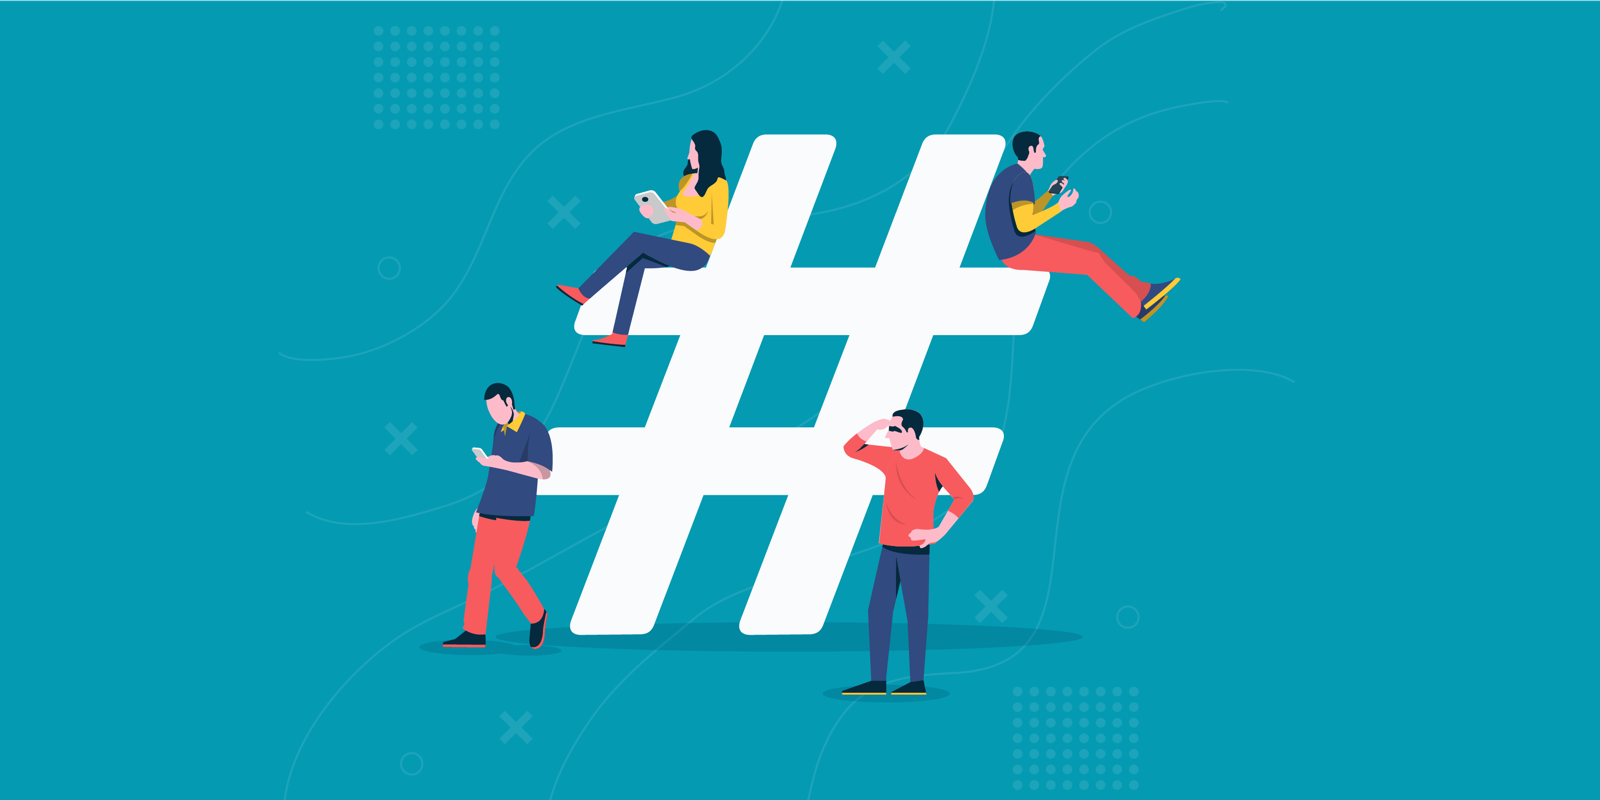 To Hashtag or Not To Hashtag